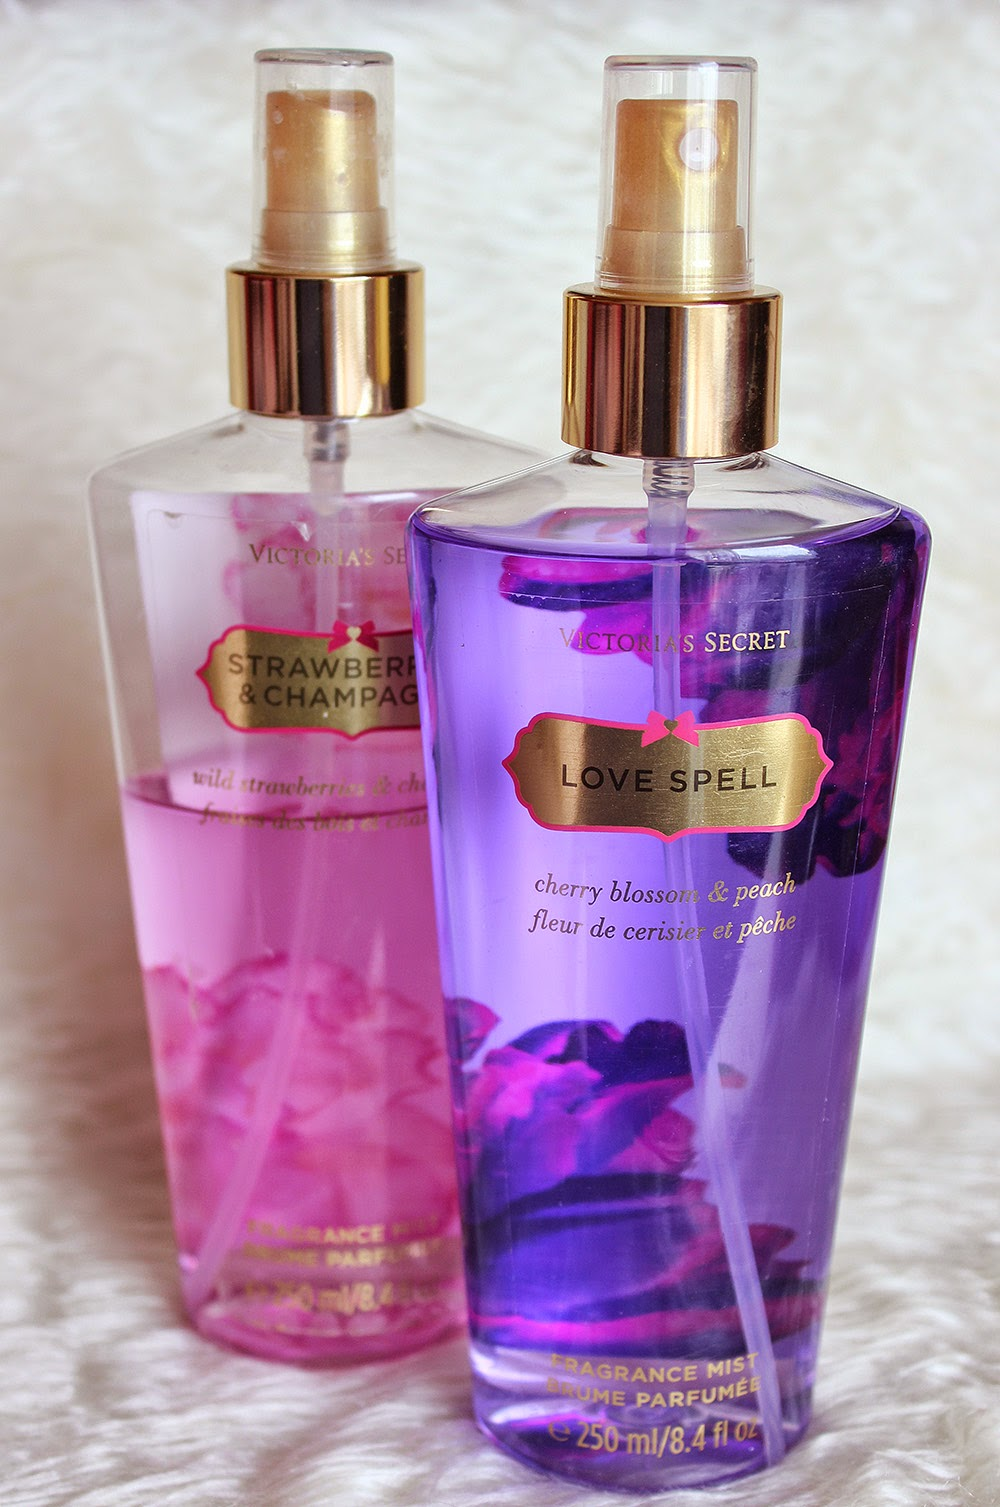 victoria's secret tělový sprej love spell recenze || review victoria's secret body spray